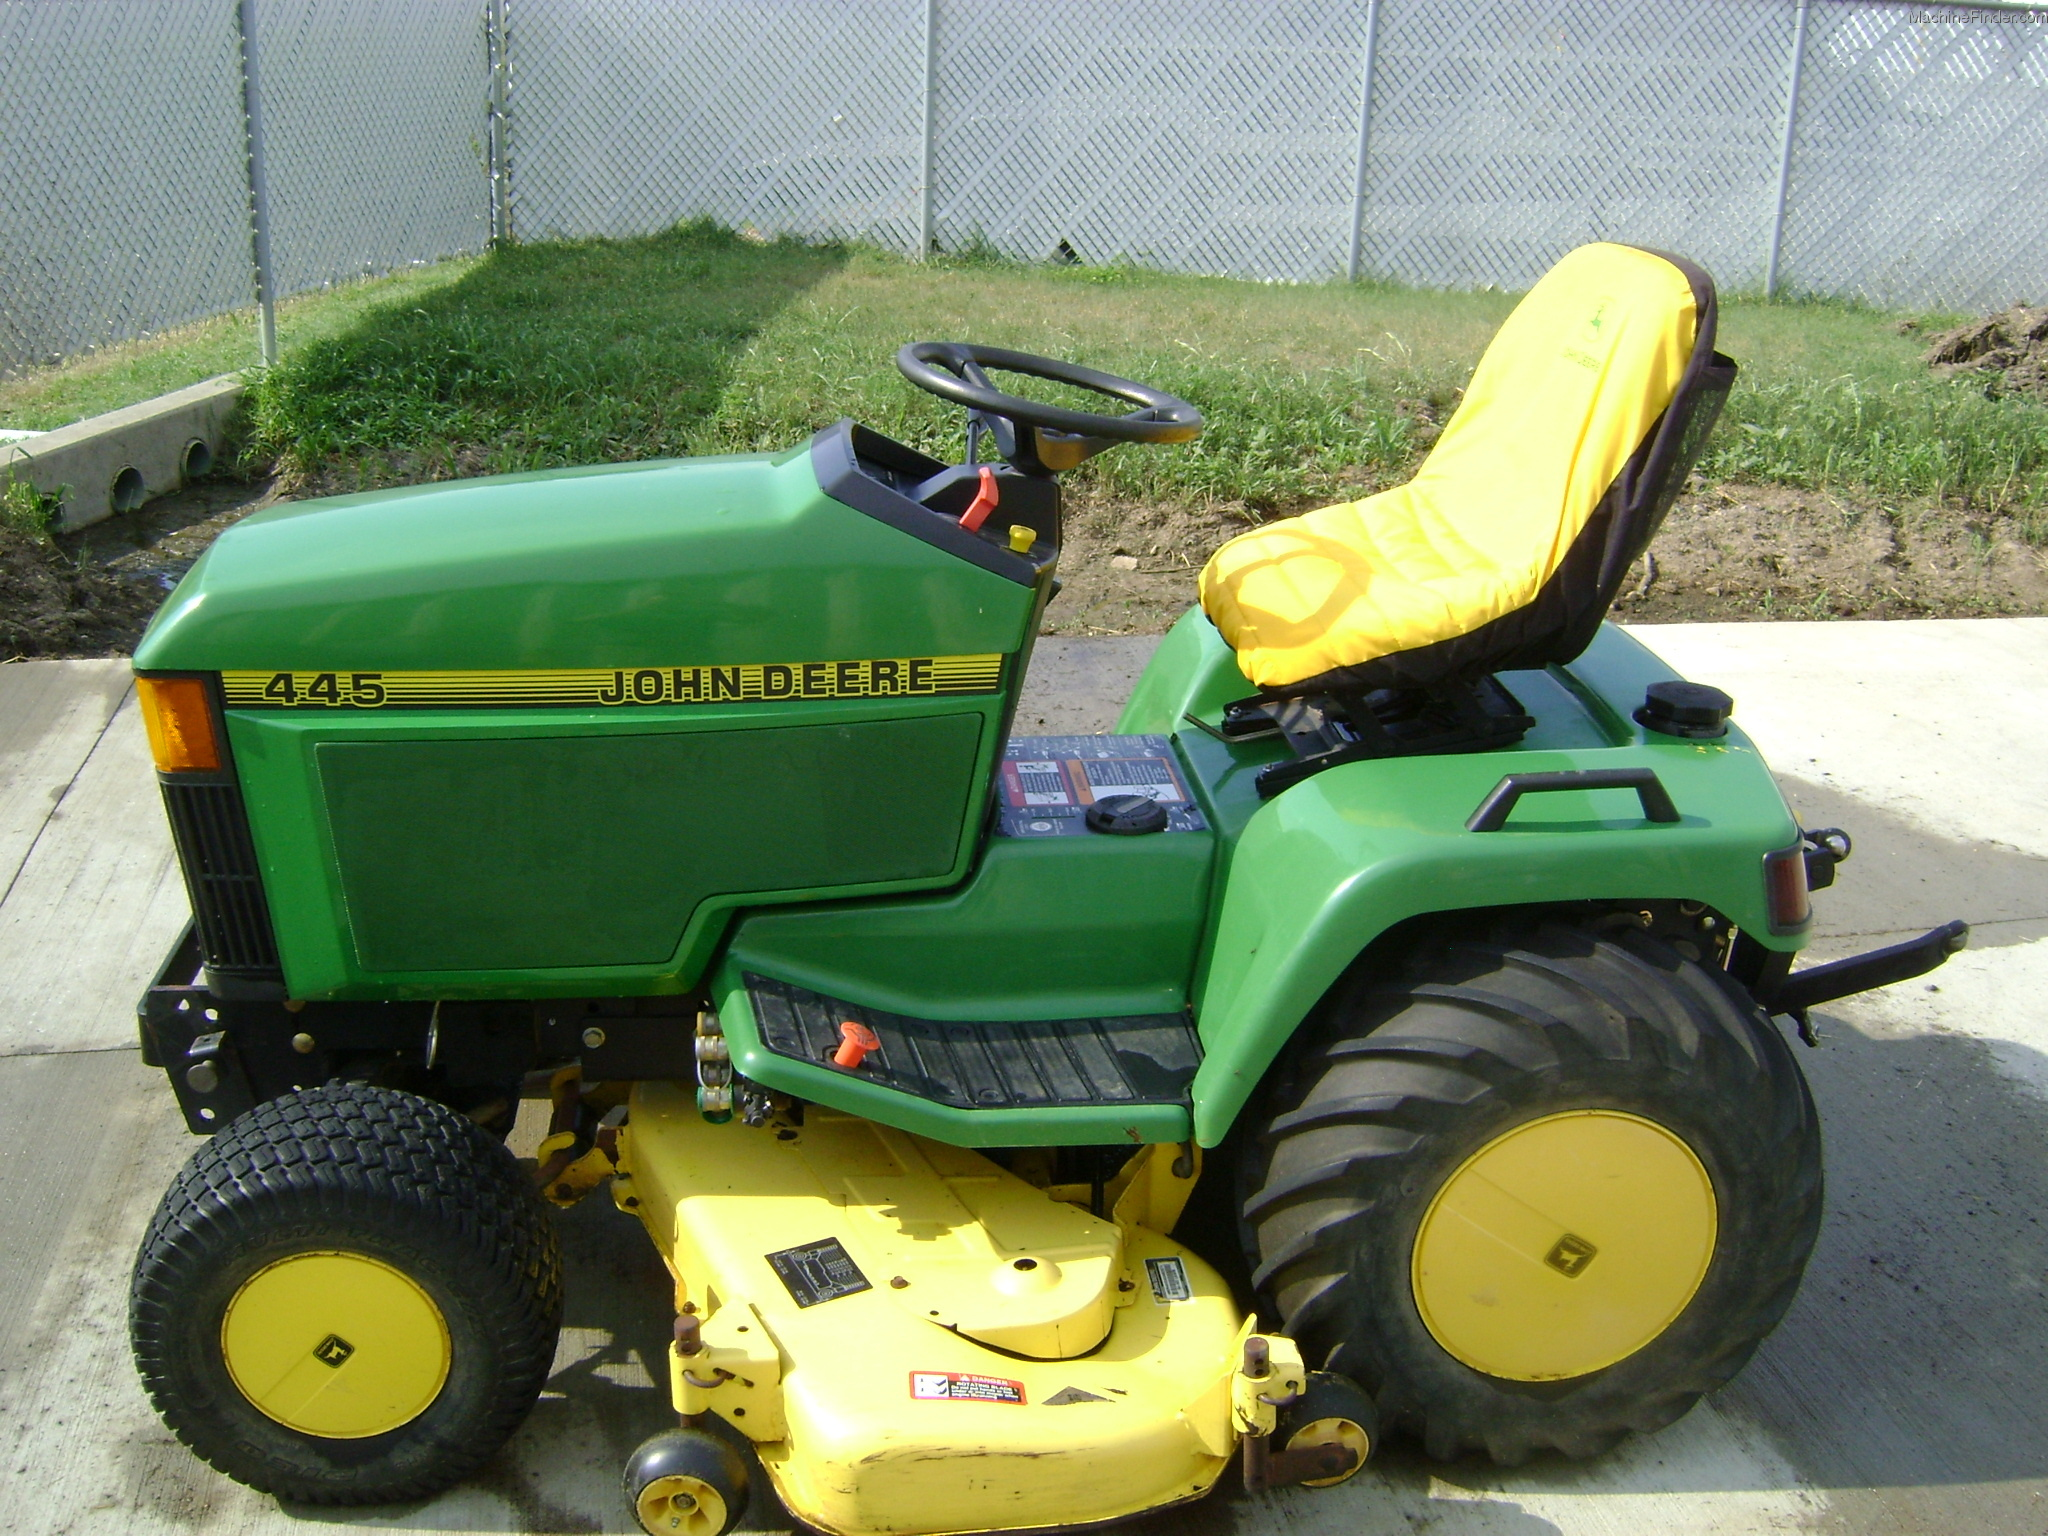 Lawn Tractor With Rear Pto : John deere w pt rear pto quot front blade lawn